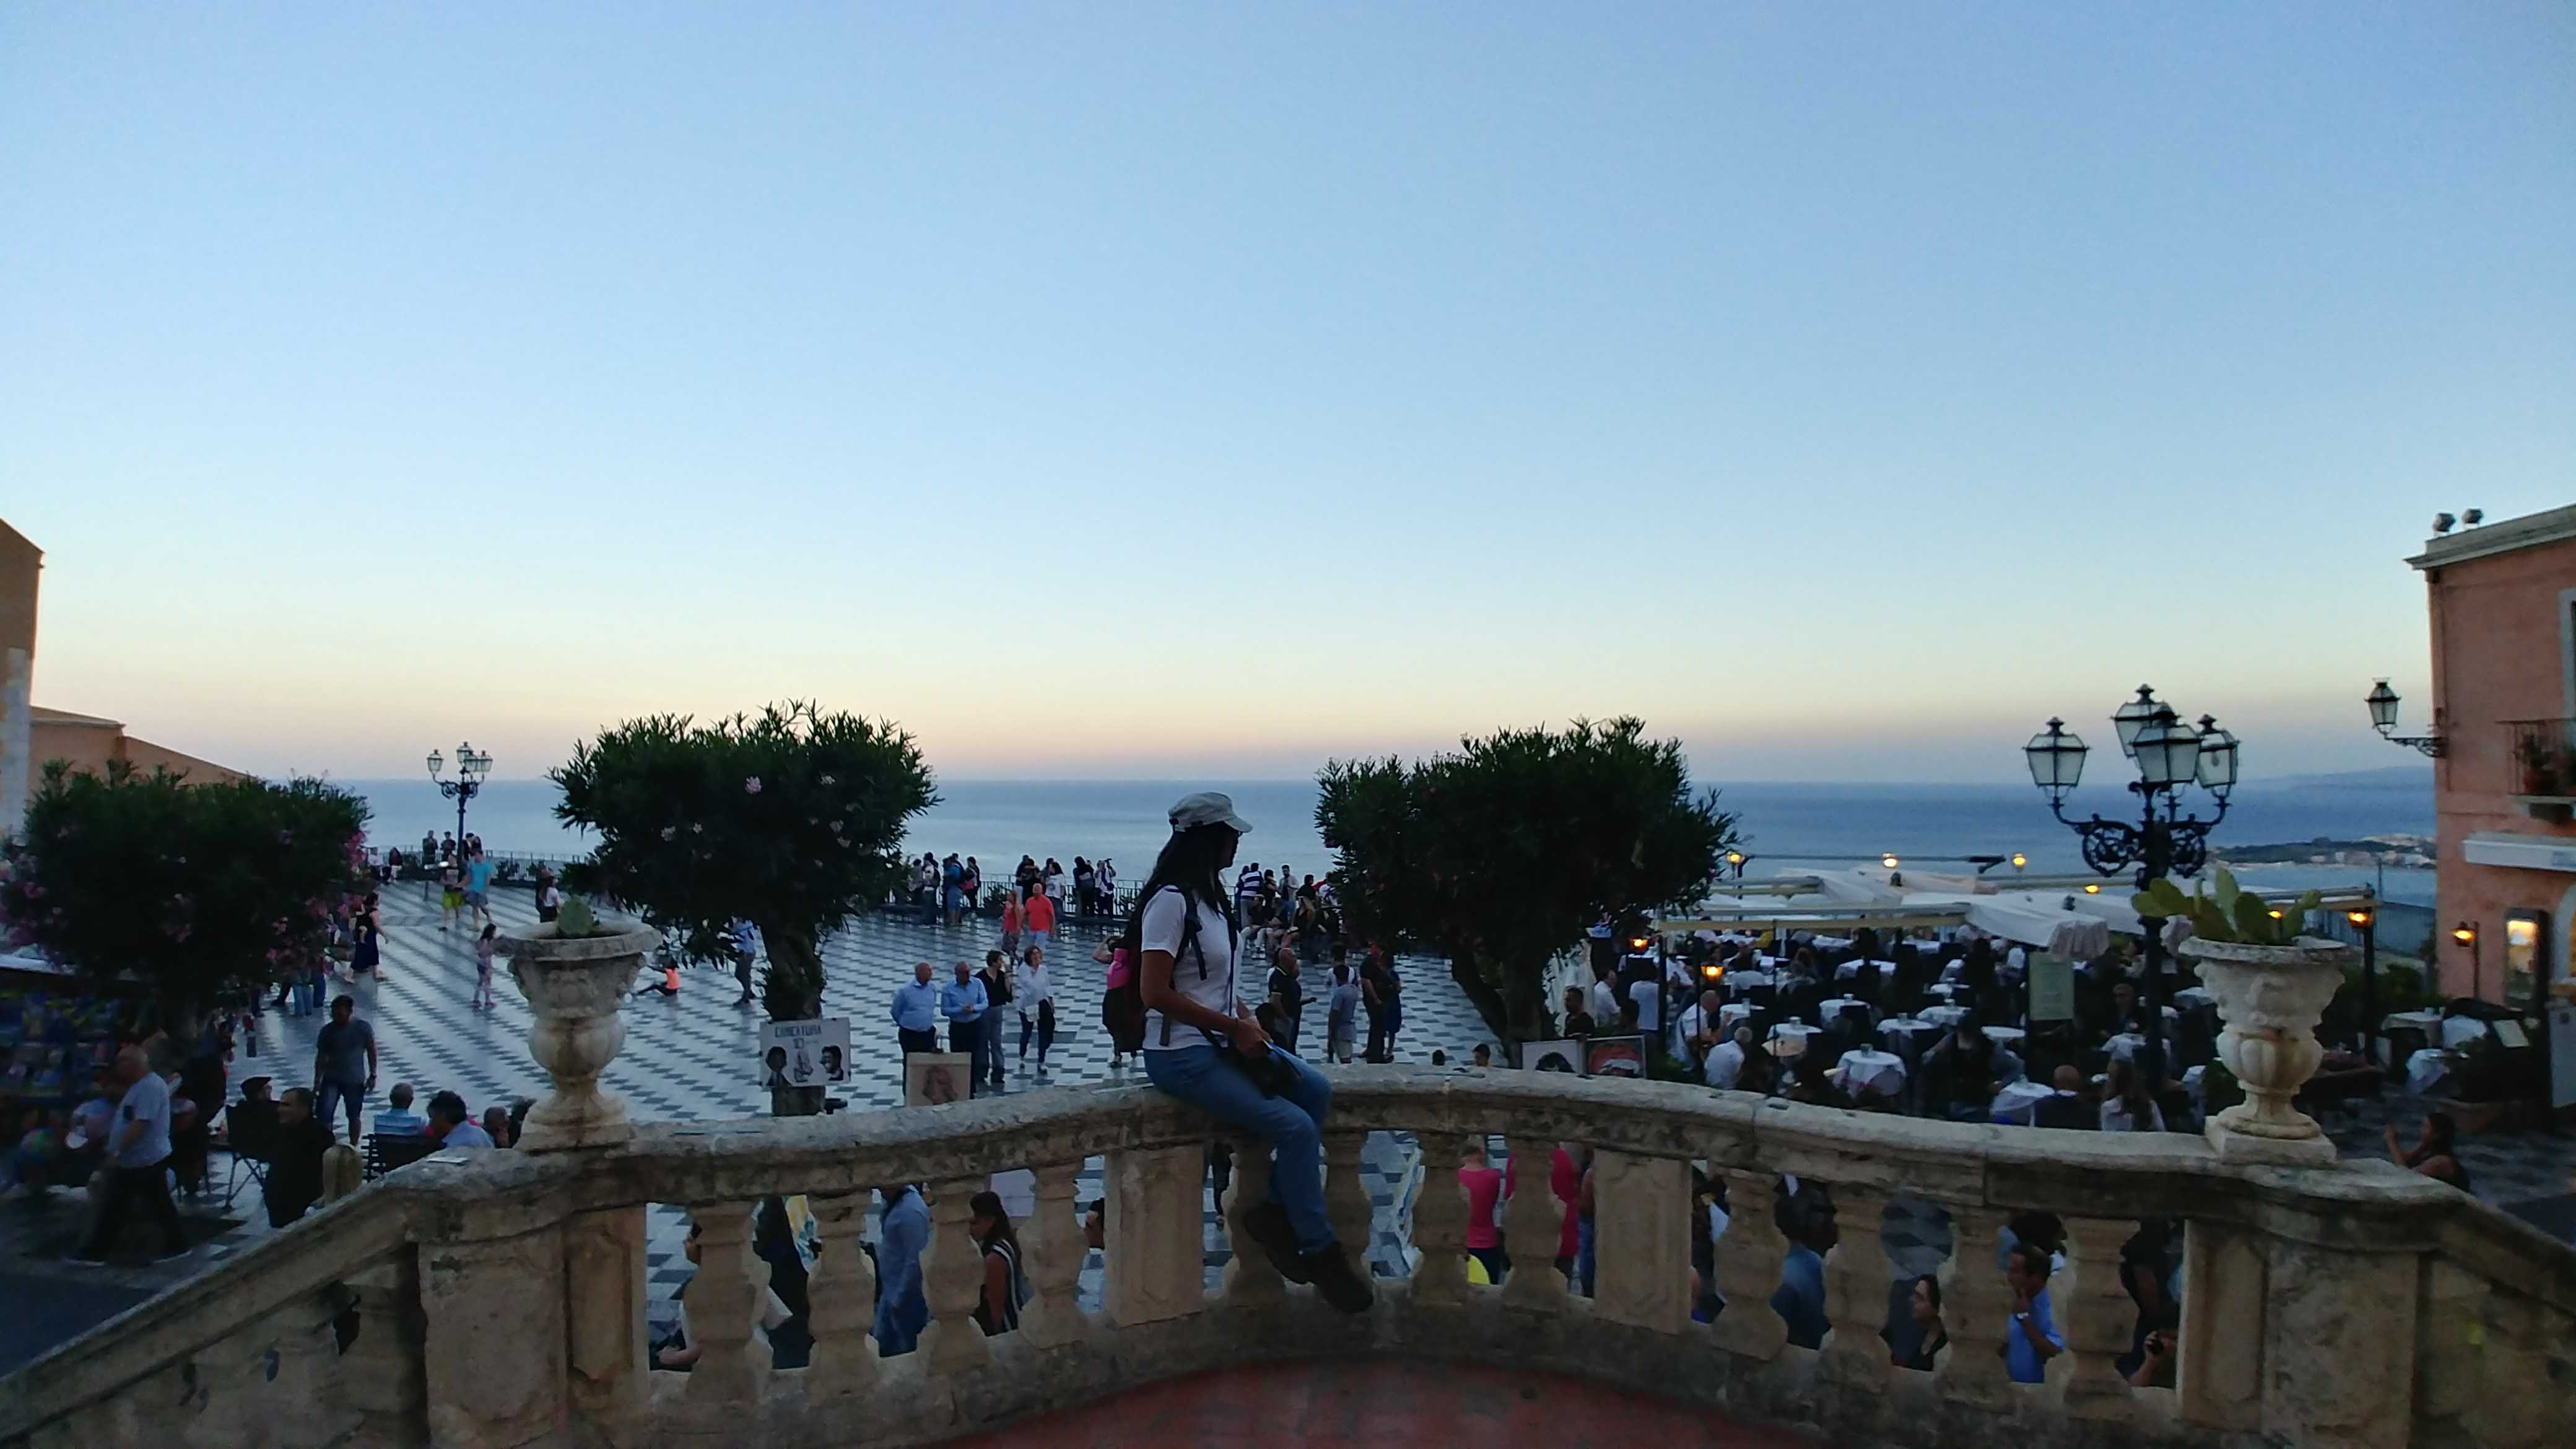 On the stair of Chiesa di San Giuseppe over looking the sea